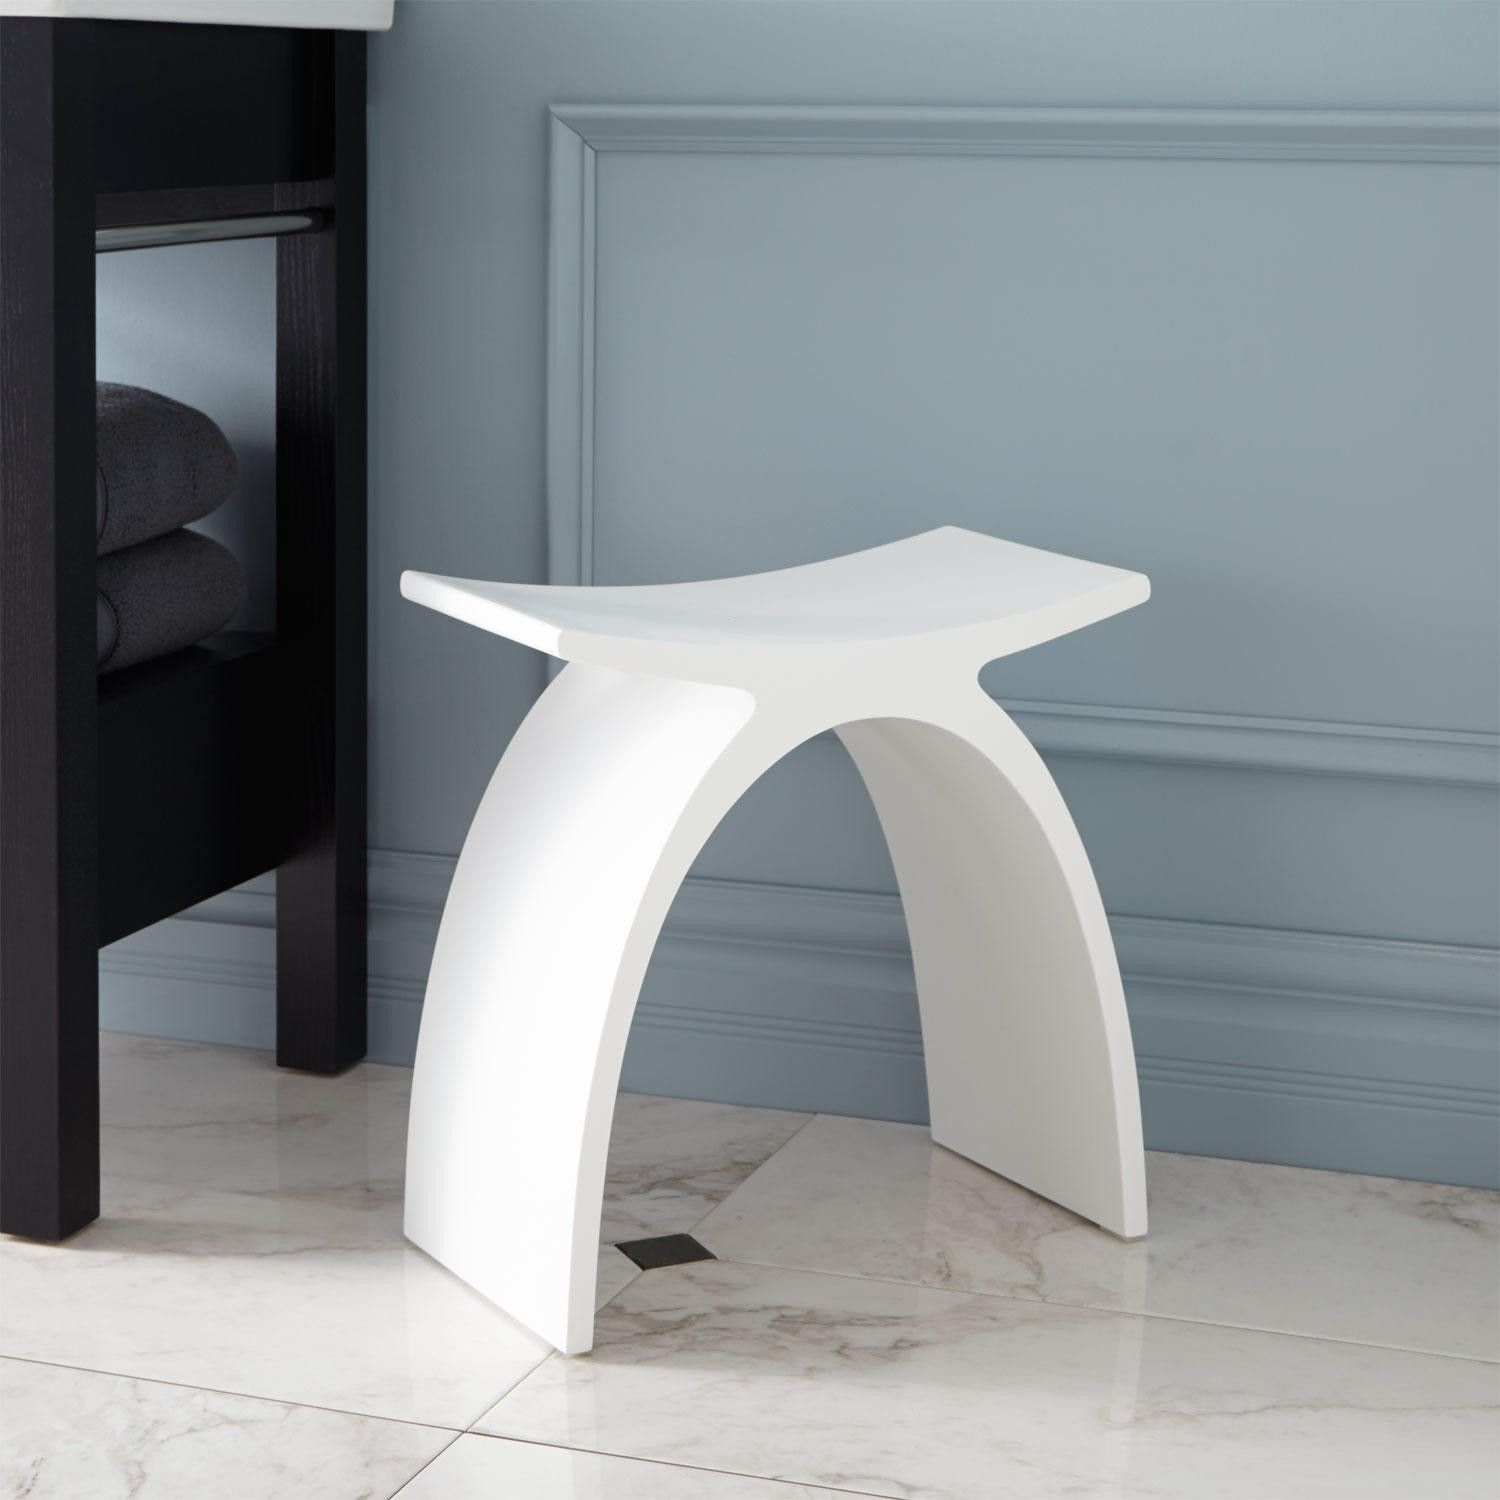 Cygni Resin Bath Stool - White Matte Finish - Shower Seats ...